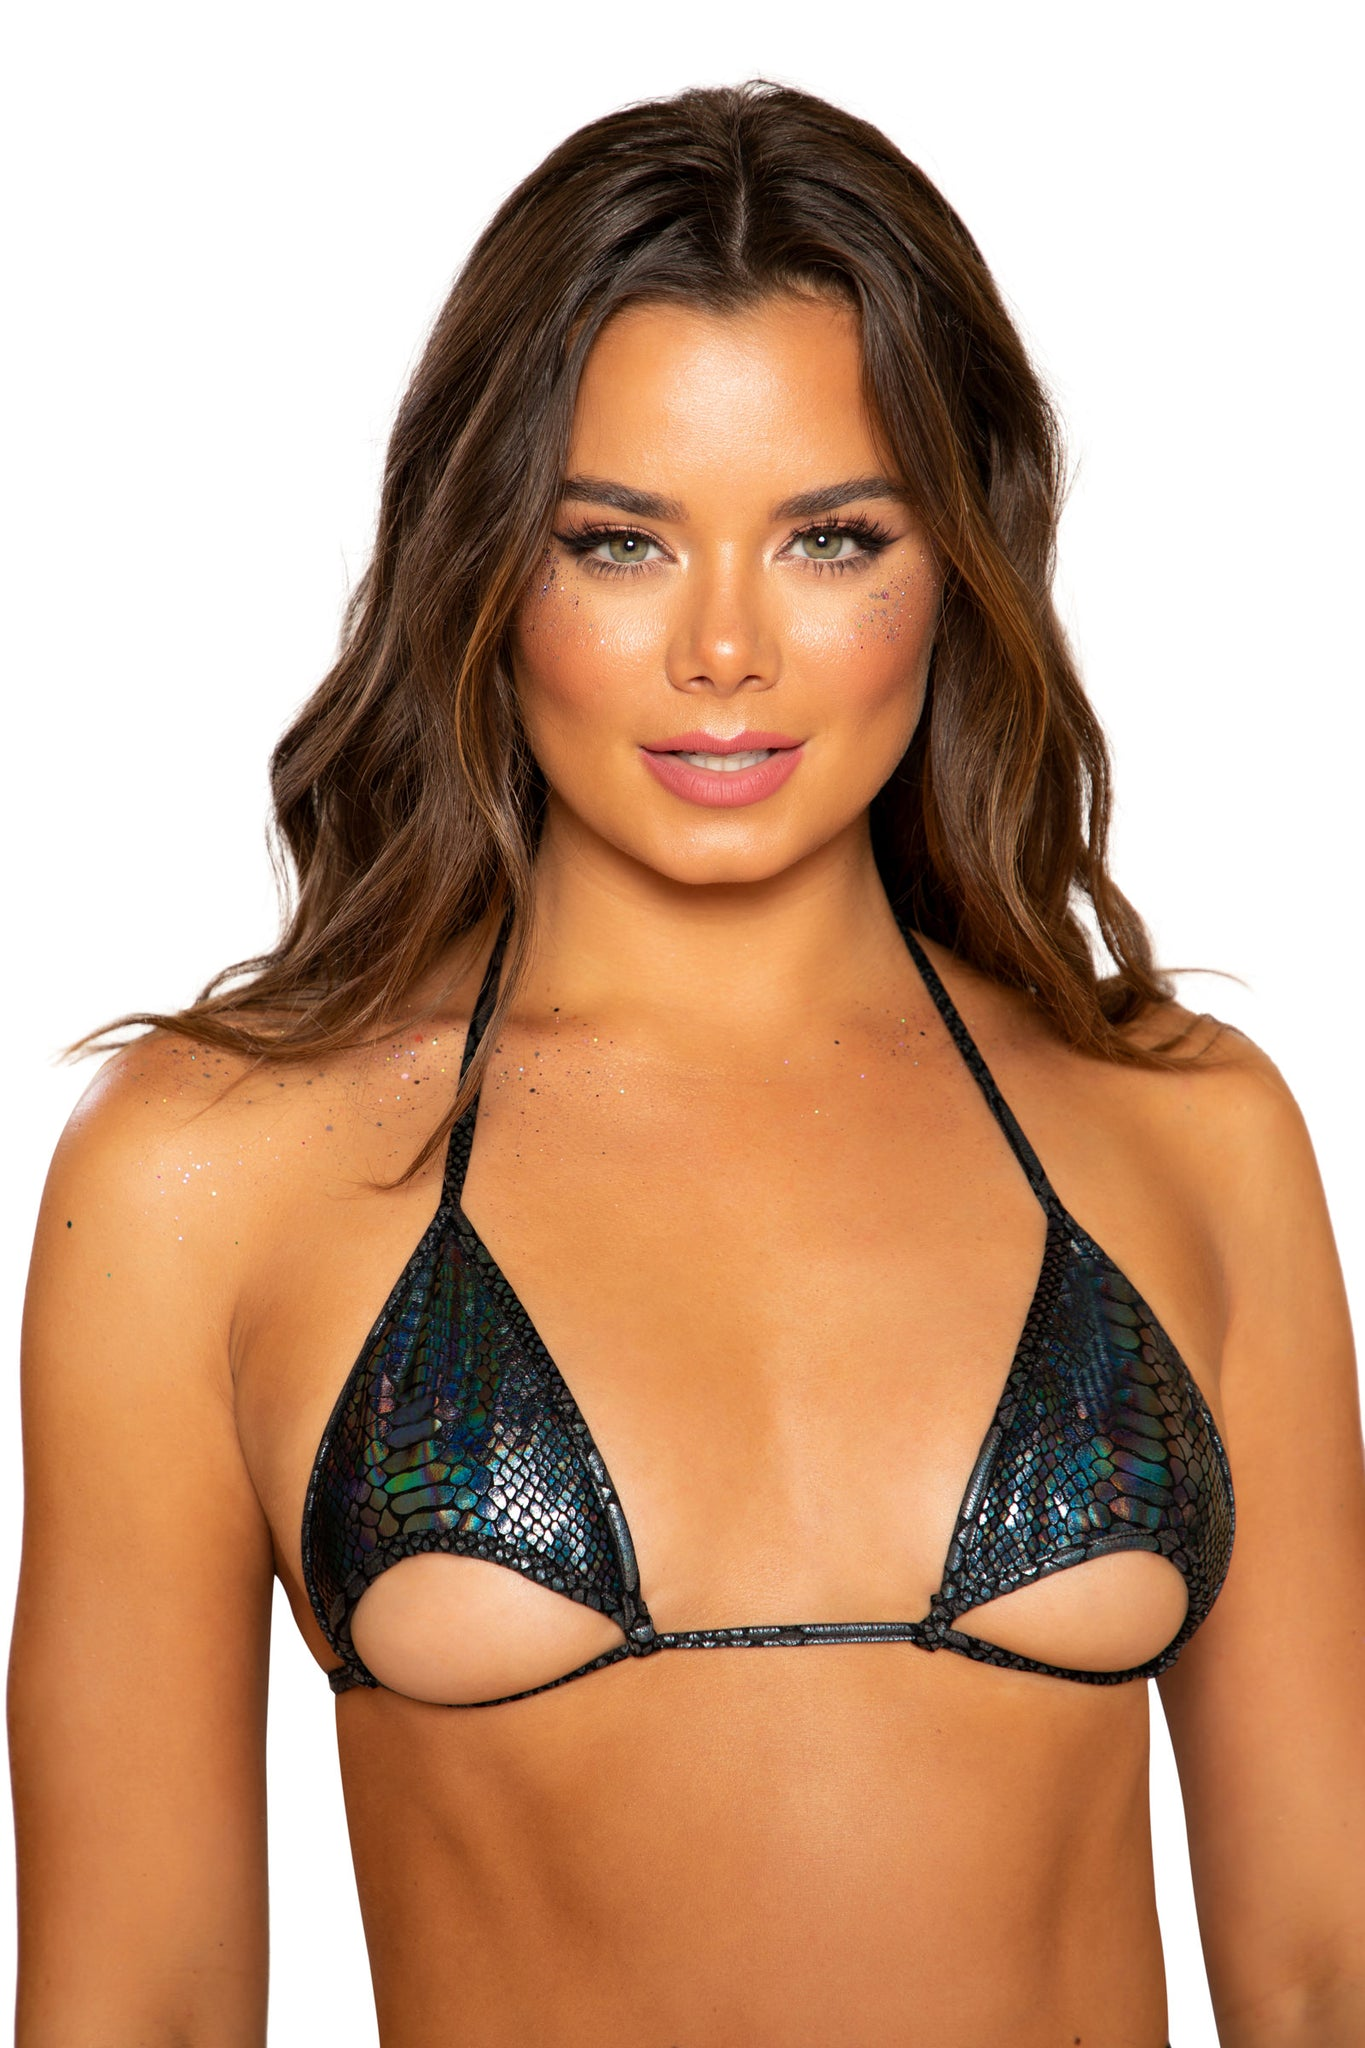 Snake Skin Cutout Bikini Top with Under boob Cutout